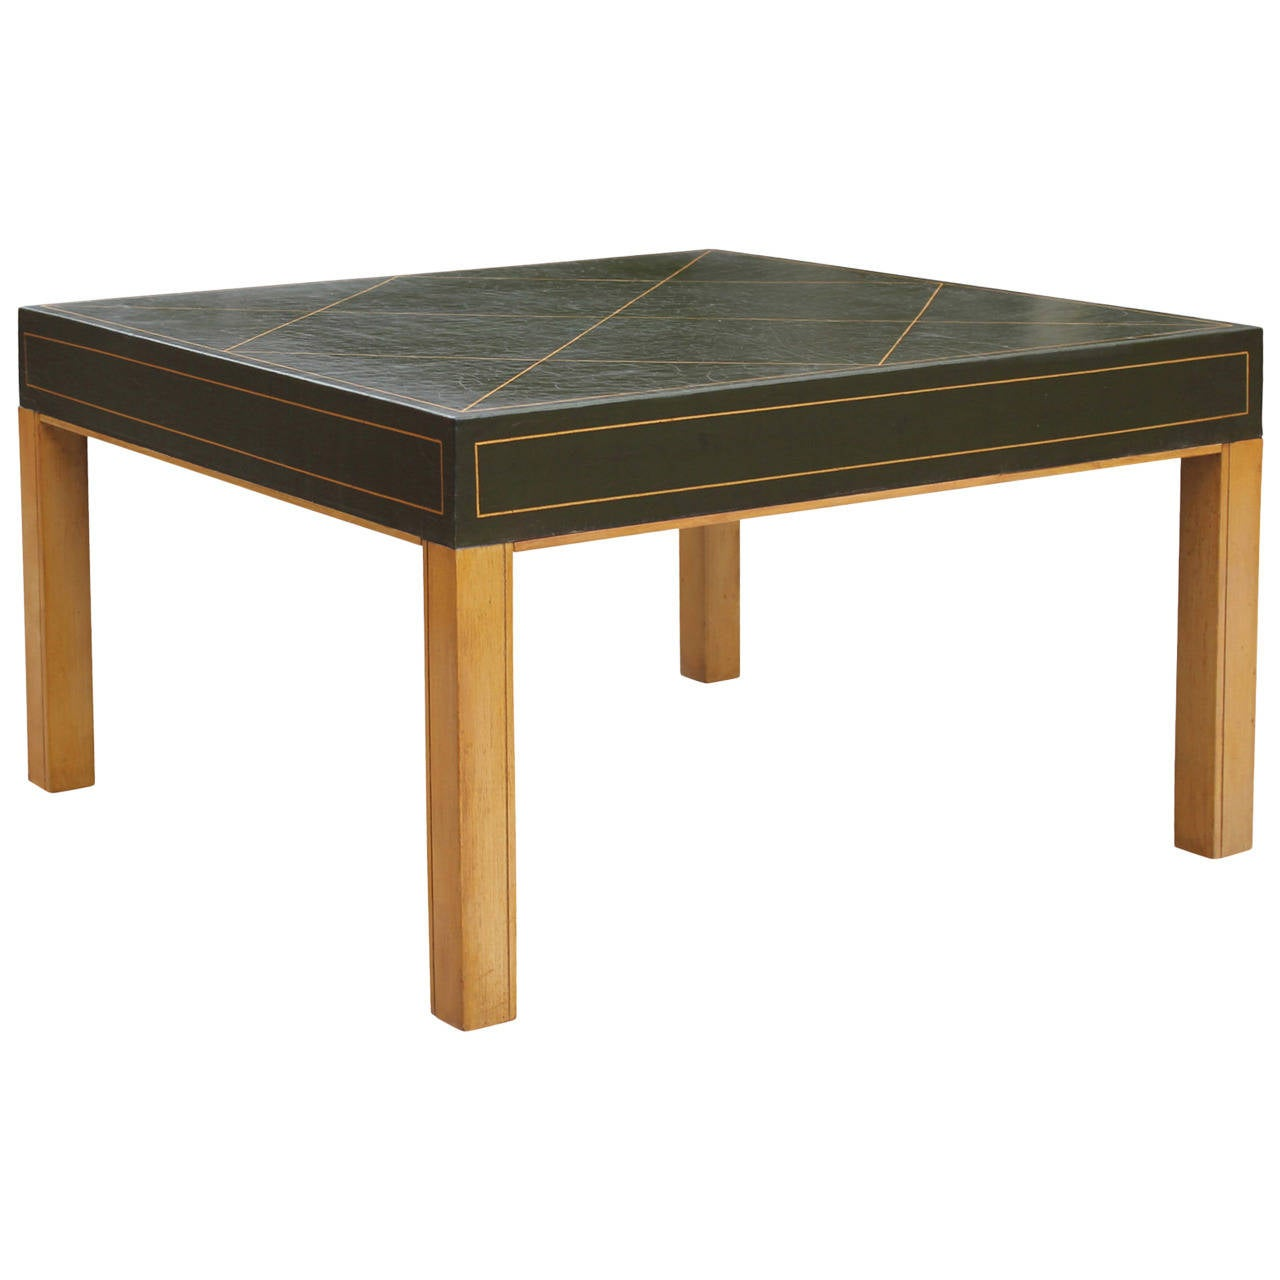 Green Leather Tommi Parzinger Style Coffee Table